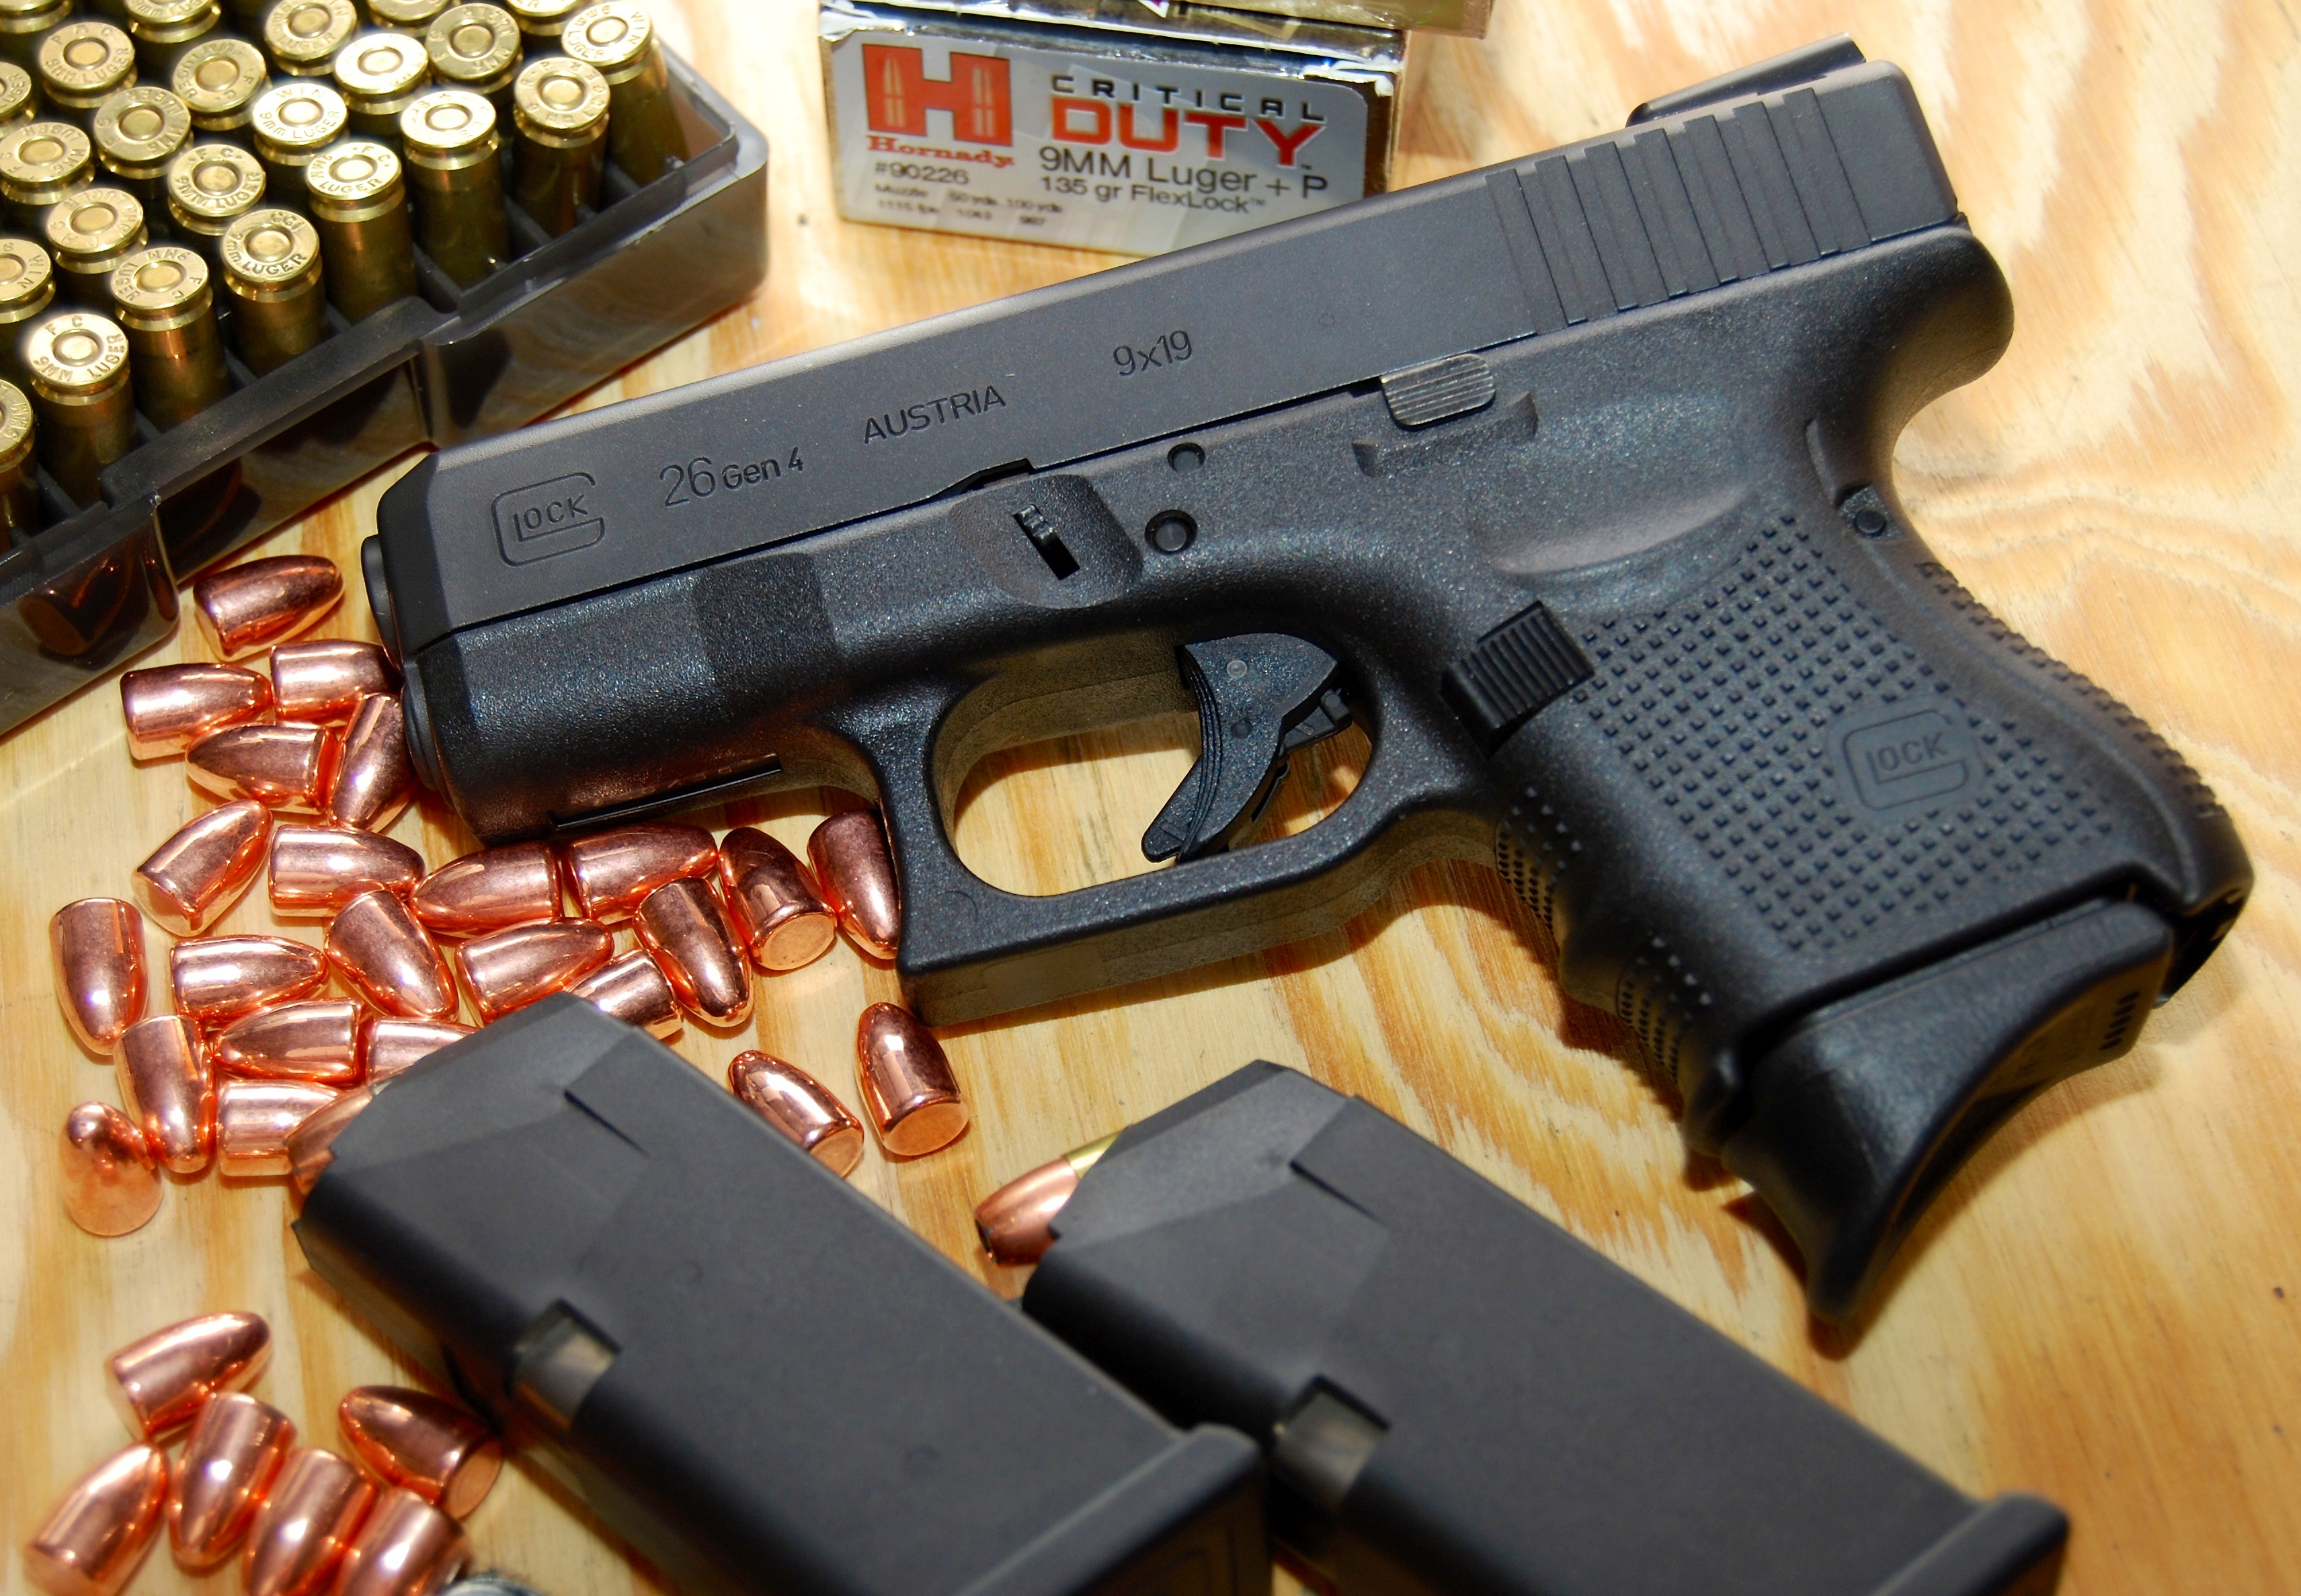 Product Review: Gaston's G.I.L.F. - the Glock 26 Gen 4 ...